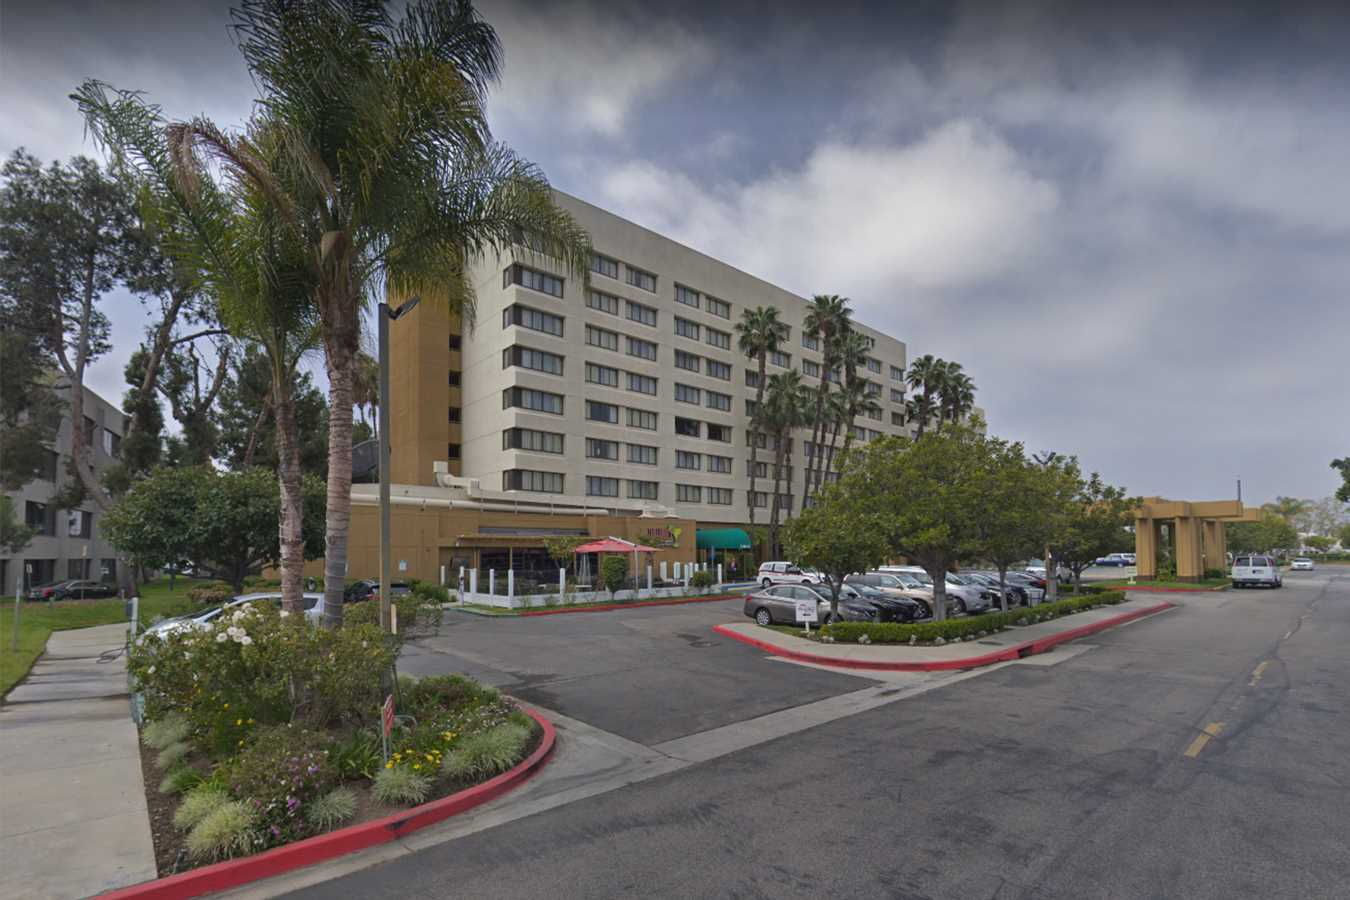 Cook at California Hotel Stockpiled Guns, Was Allegedly Planning Mass Shooting: Police